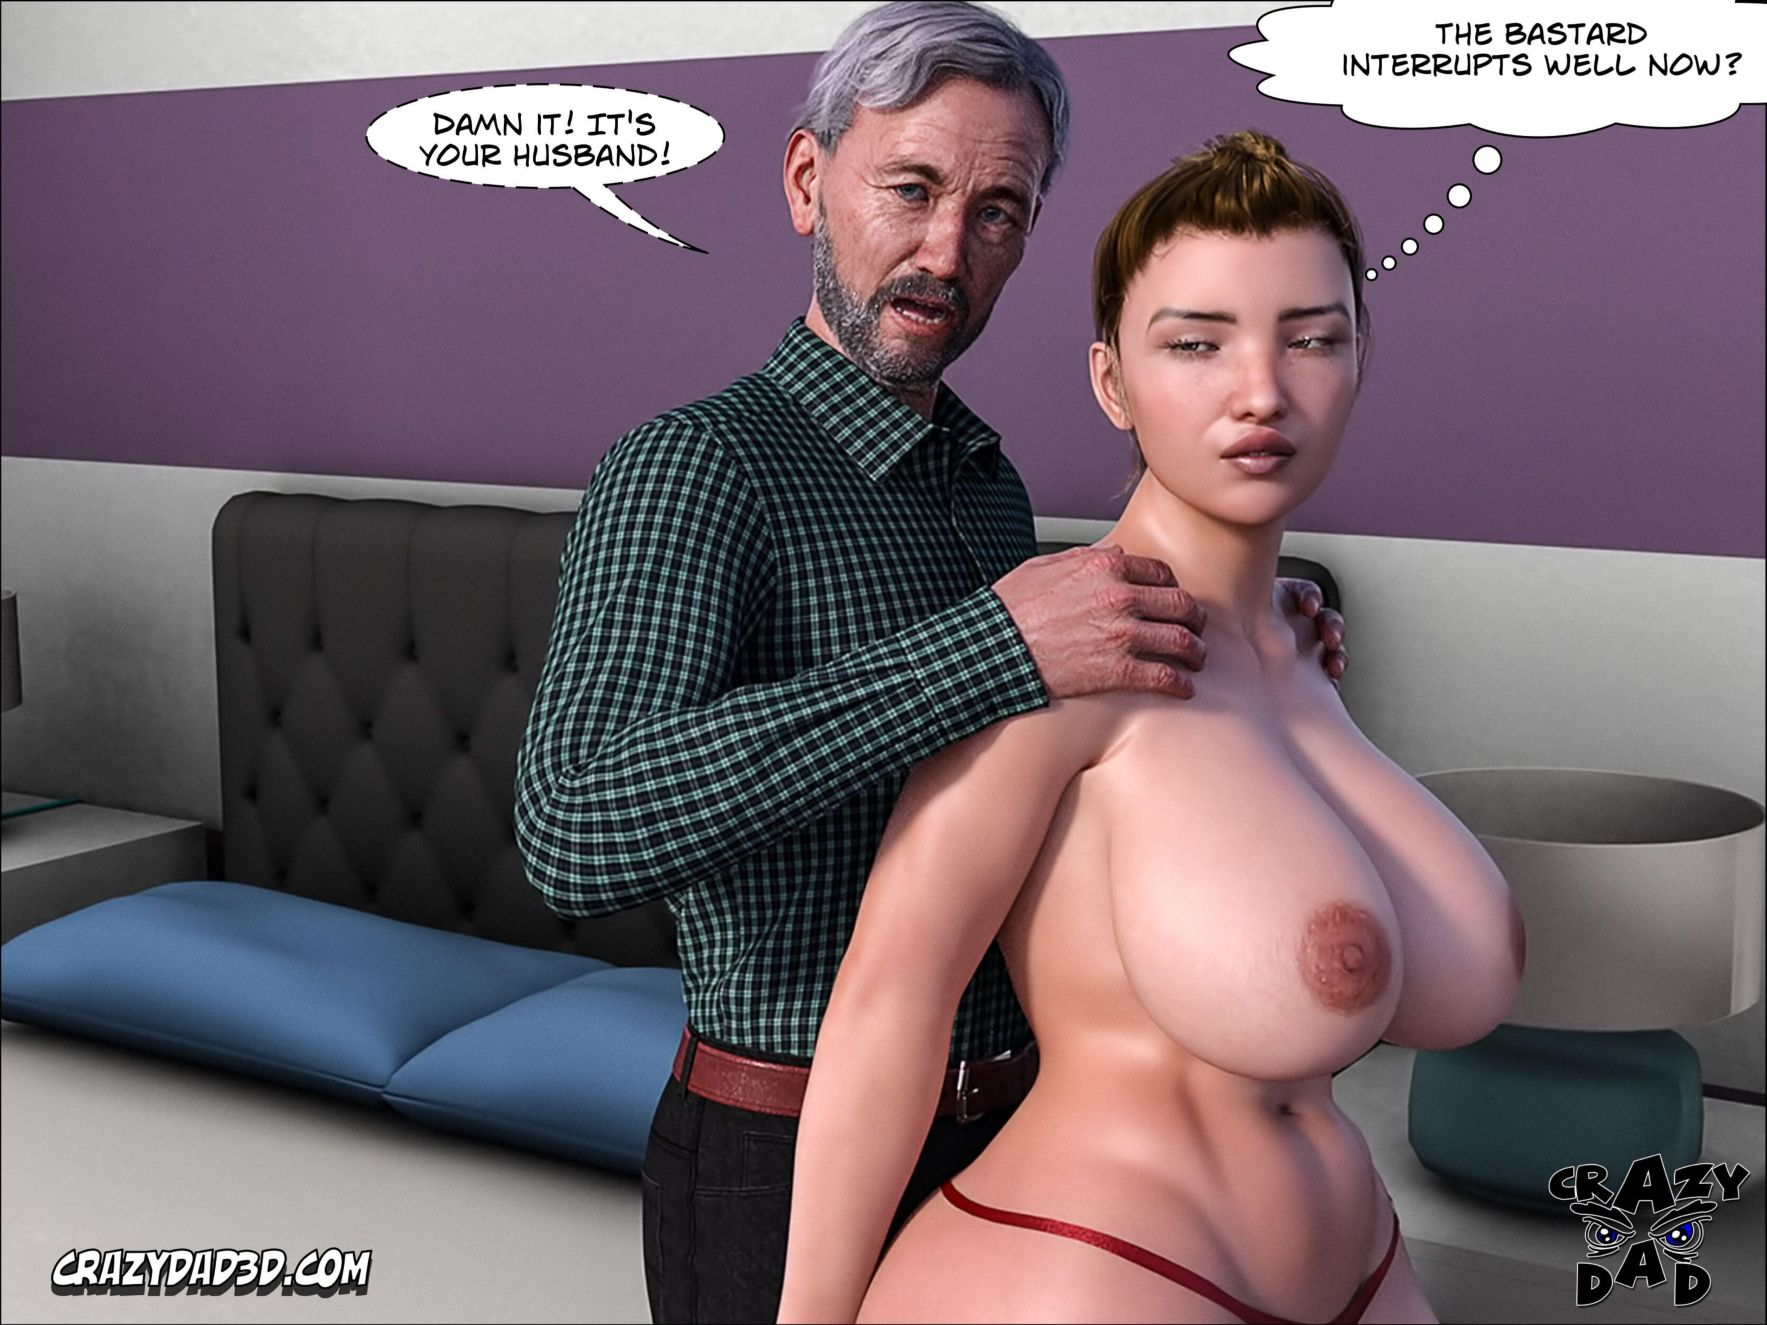 Father-in-Law at Home 8 [Crazy Dad]